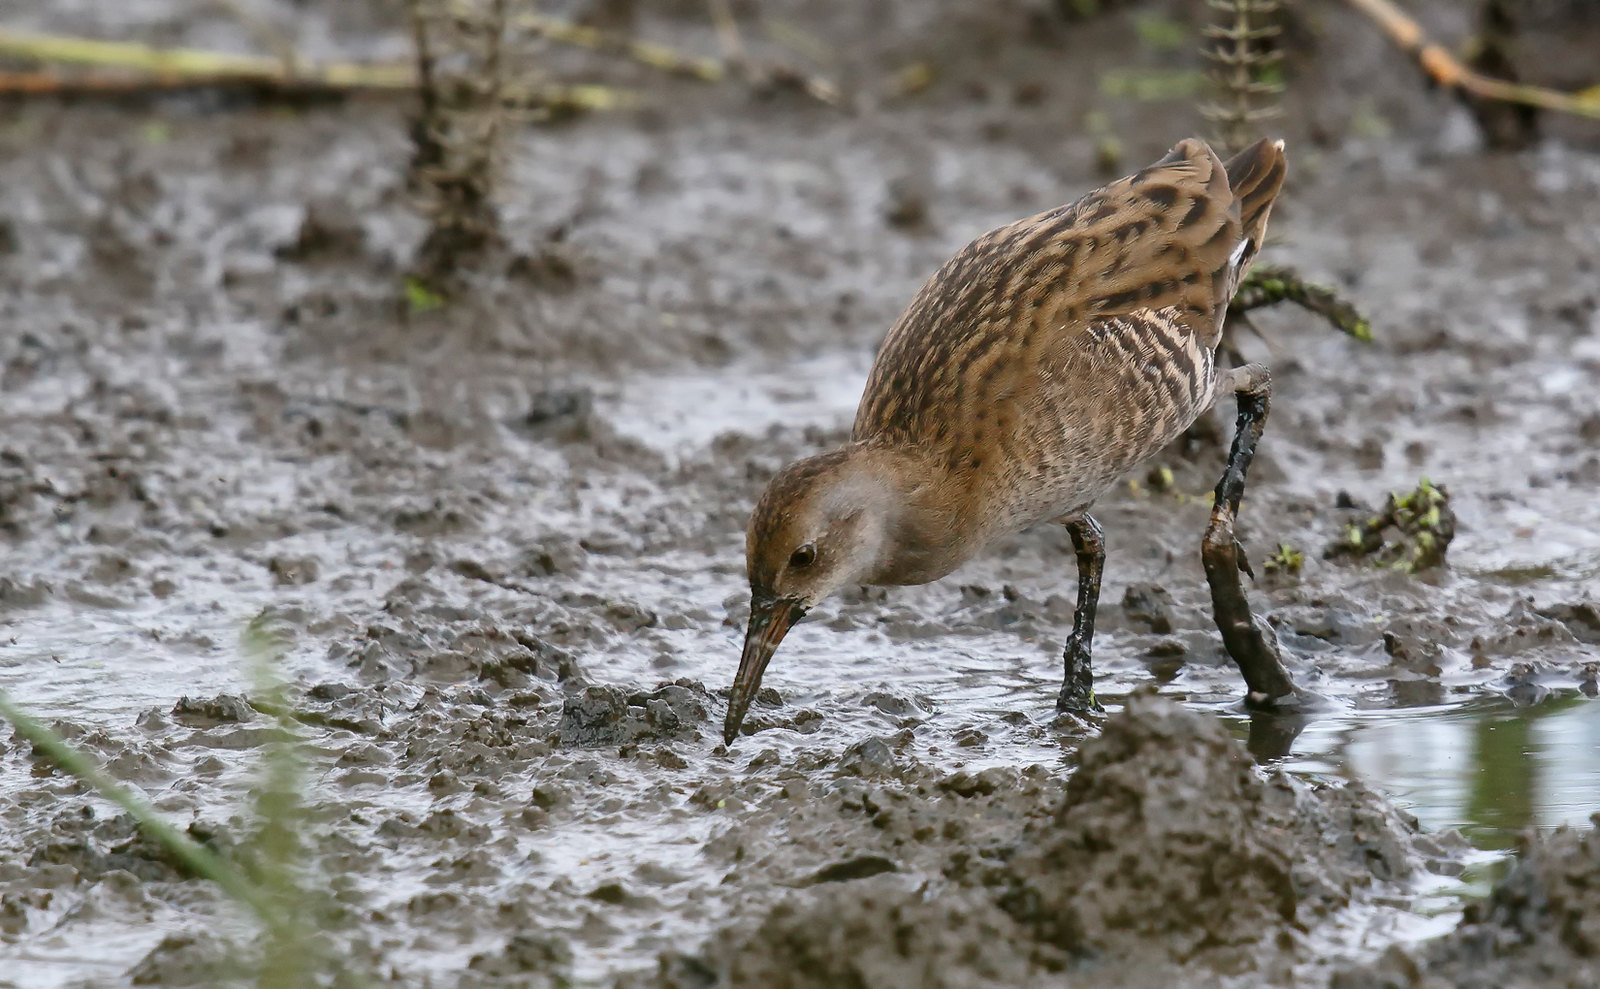 Juvenile Water Rail